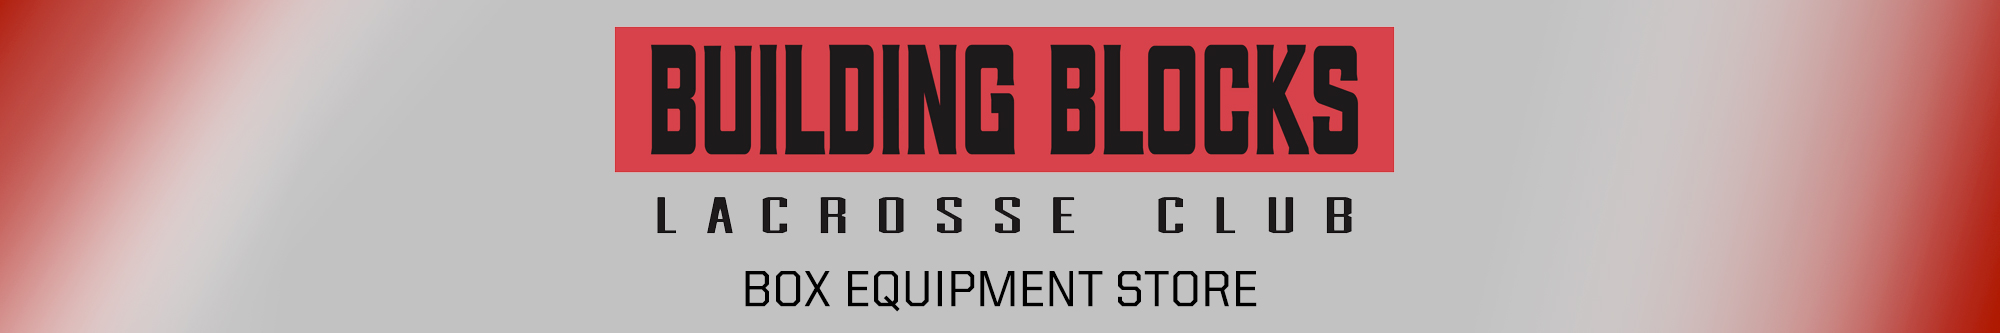 building-blocks Box Equipment Store